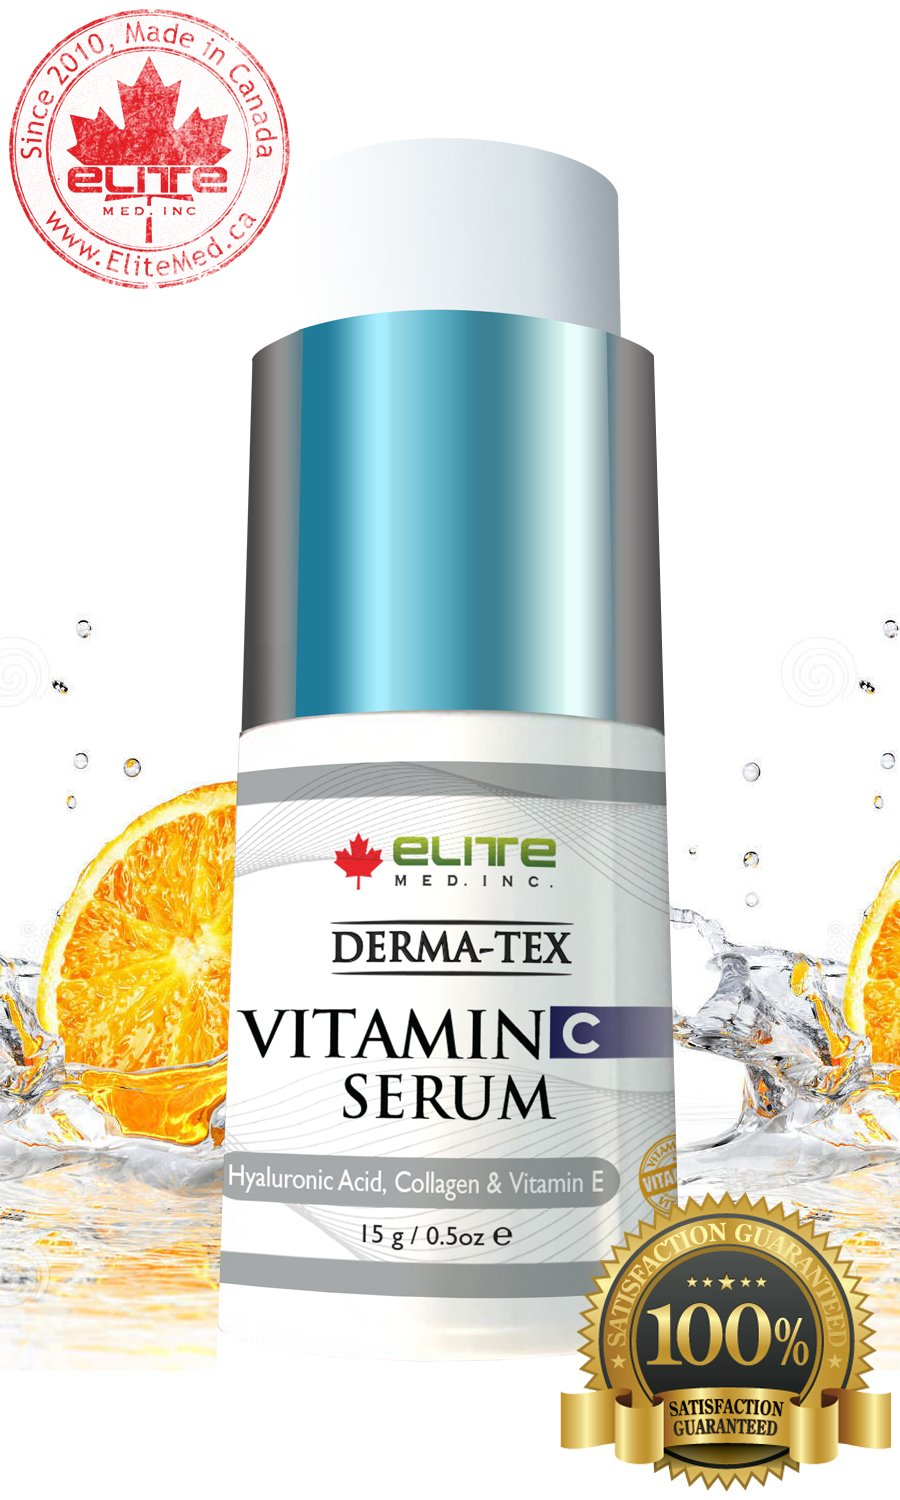 Vitamin C Serum Hyaluronic acid Collagen & Vit E skin care - Derma-Tex C Plus 15g